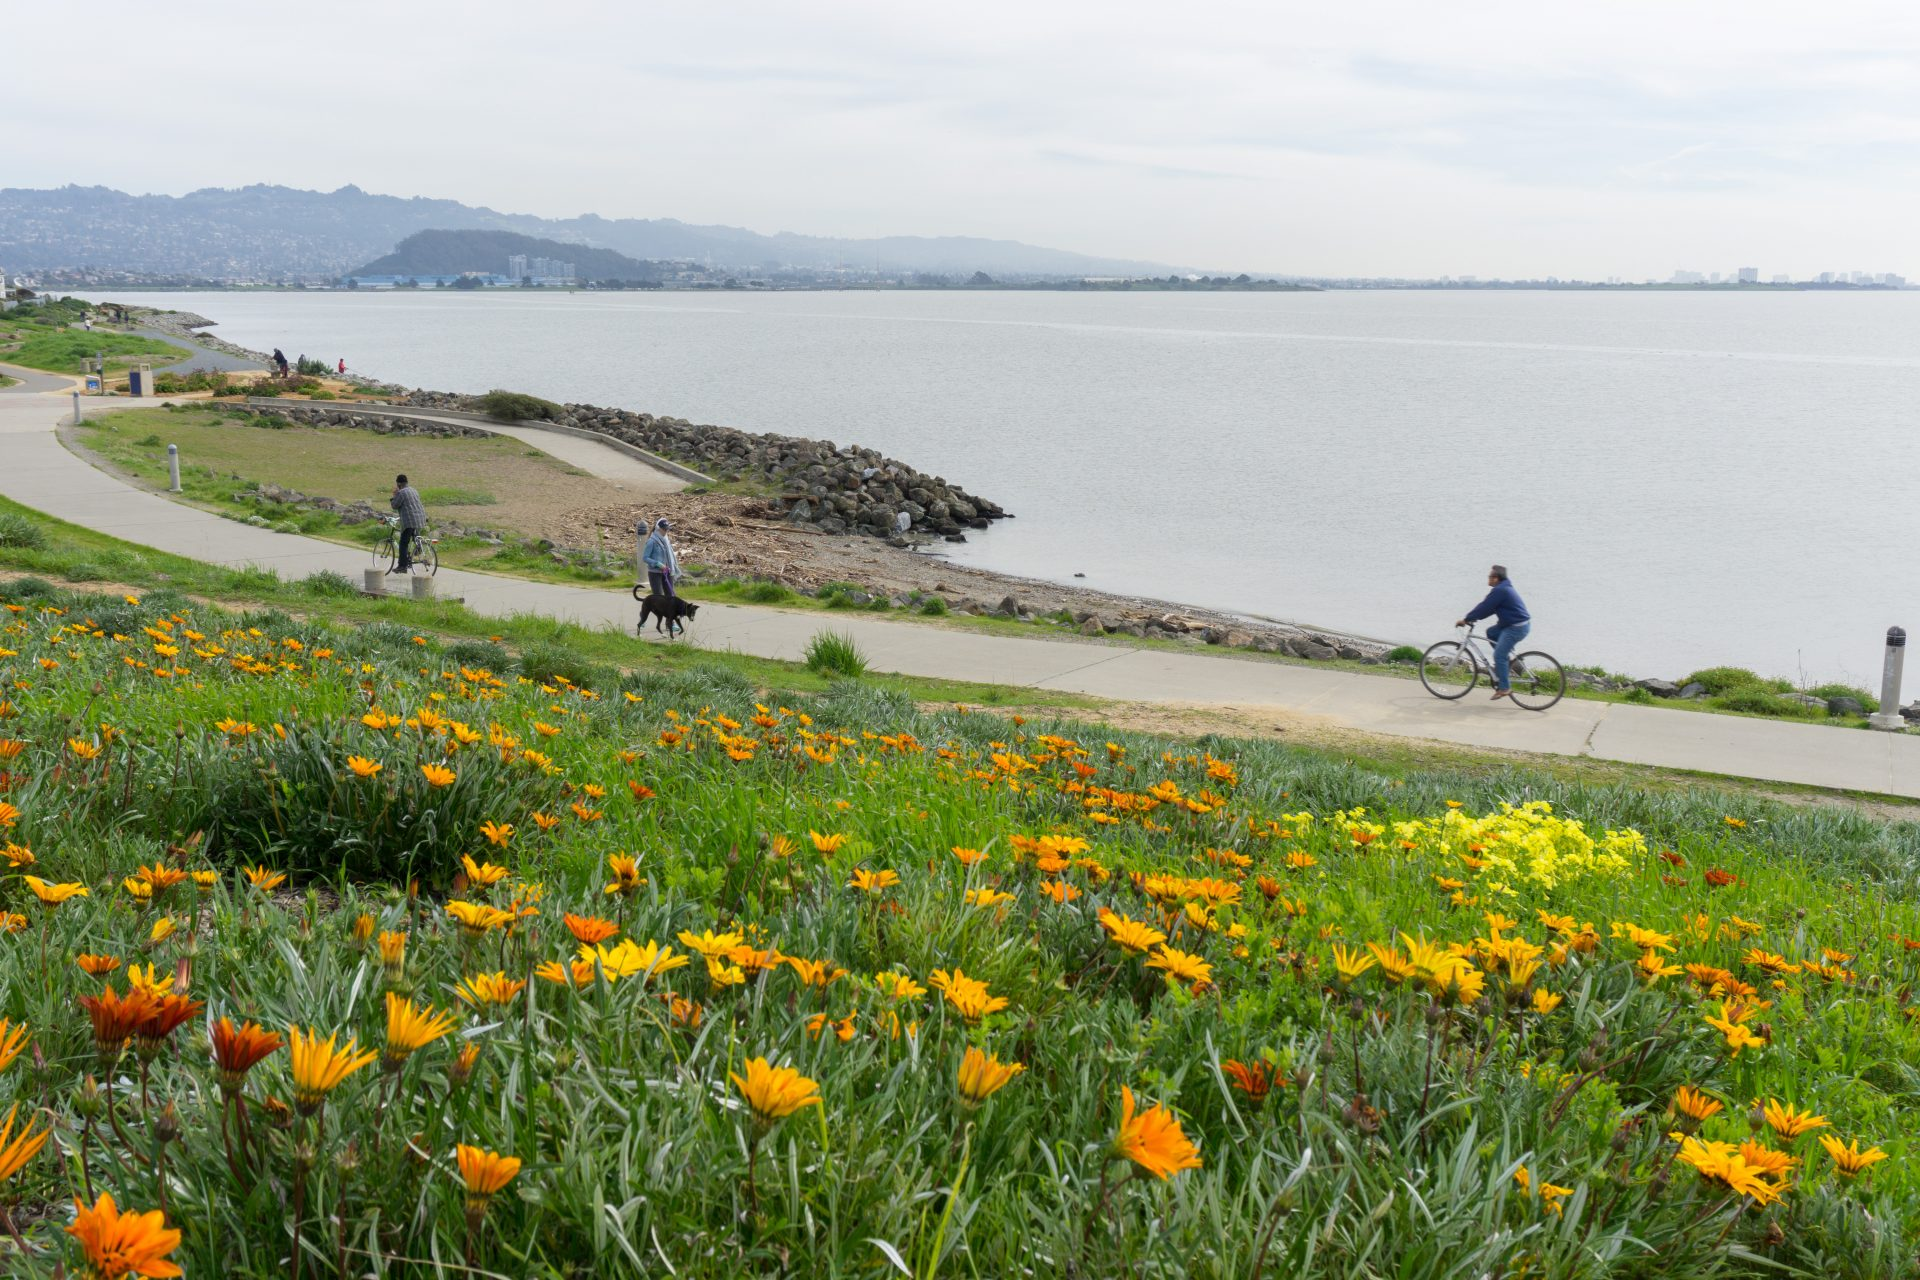 Orange flowers in foregounrd, biyclists and dog walker passing on paved path, Bay beyond